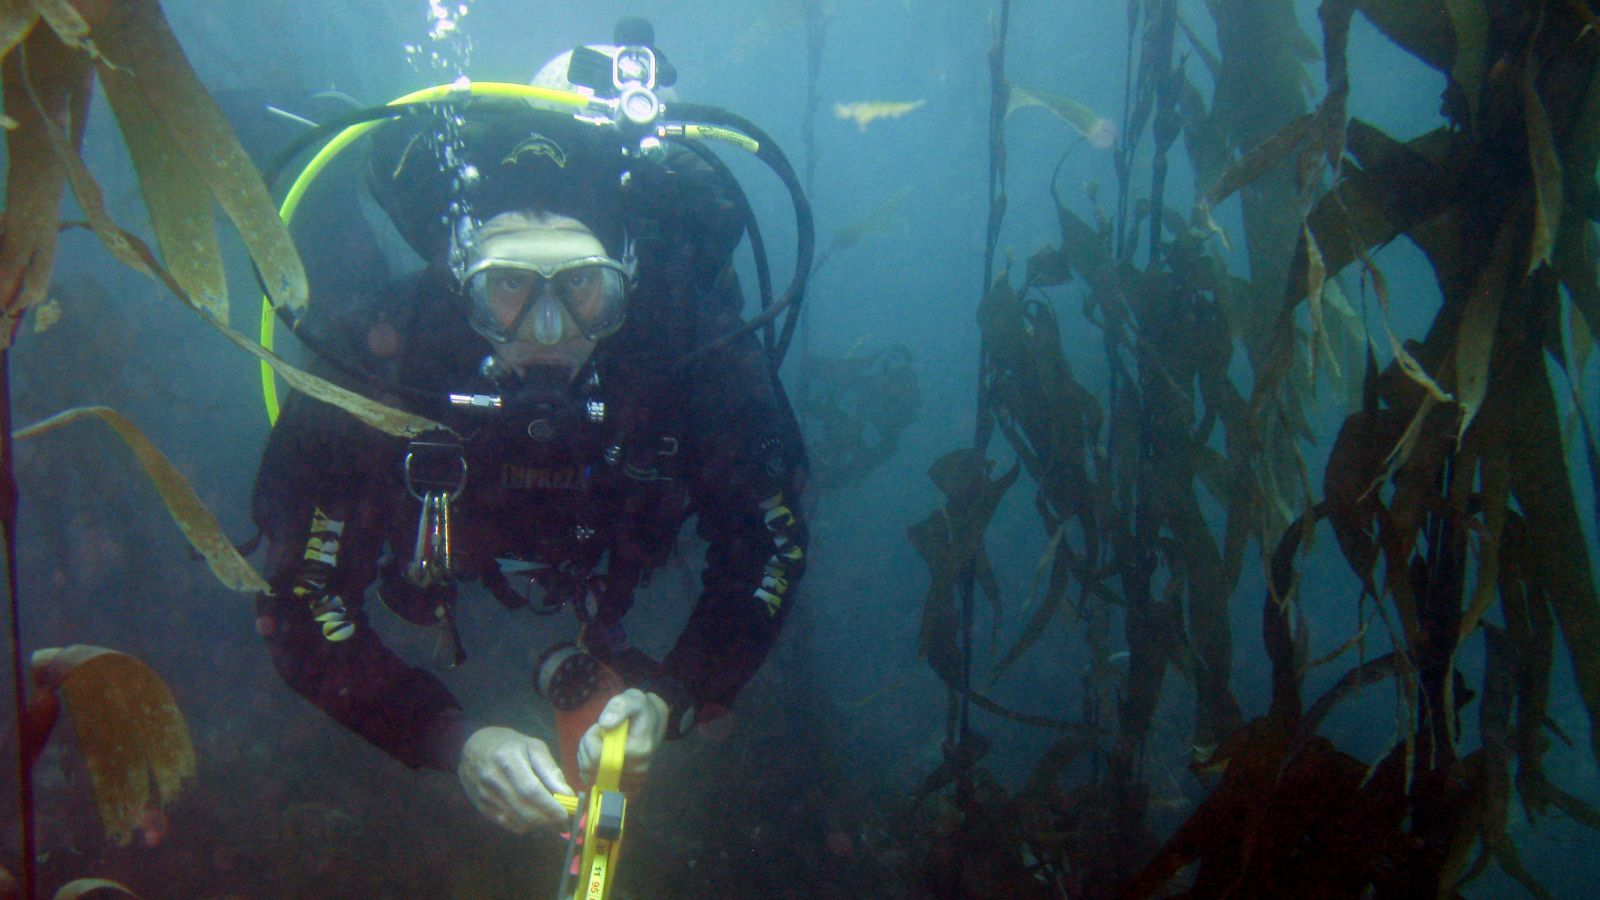 An image of a vucel diver underwater.